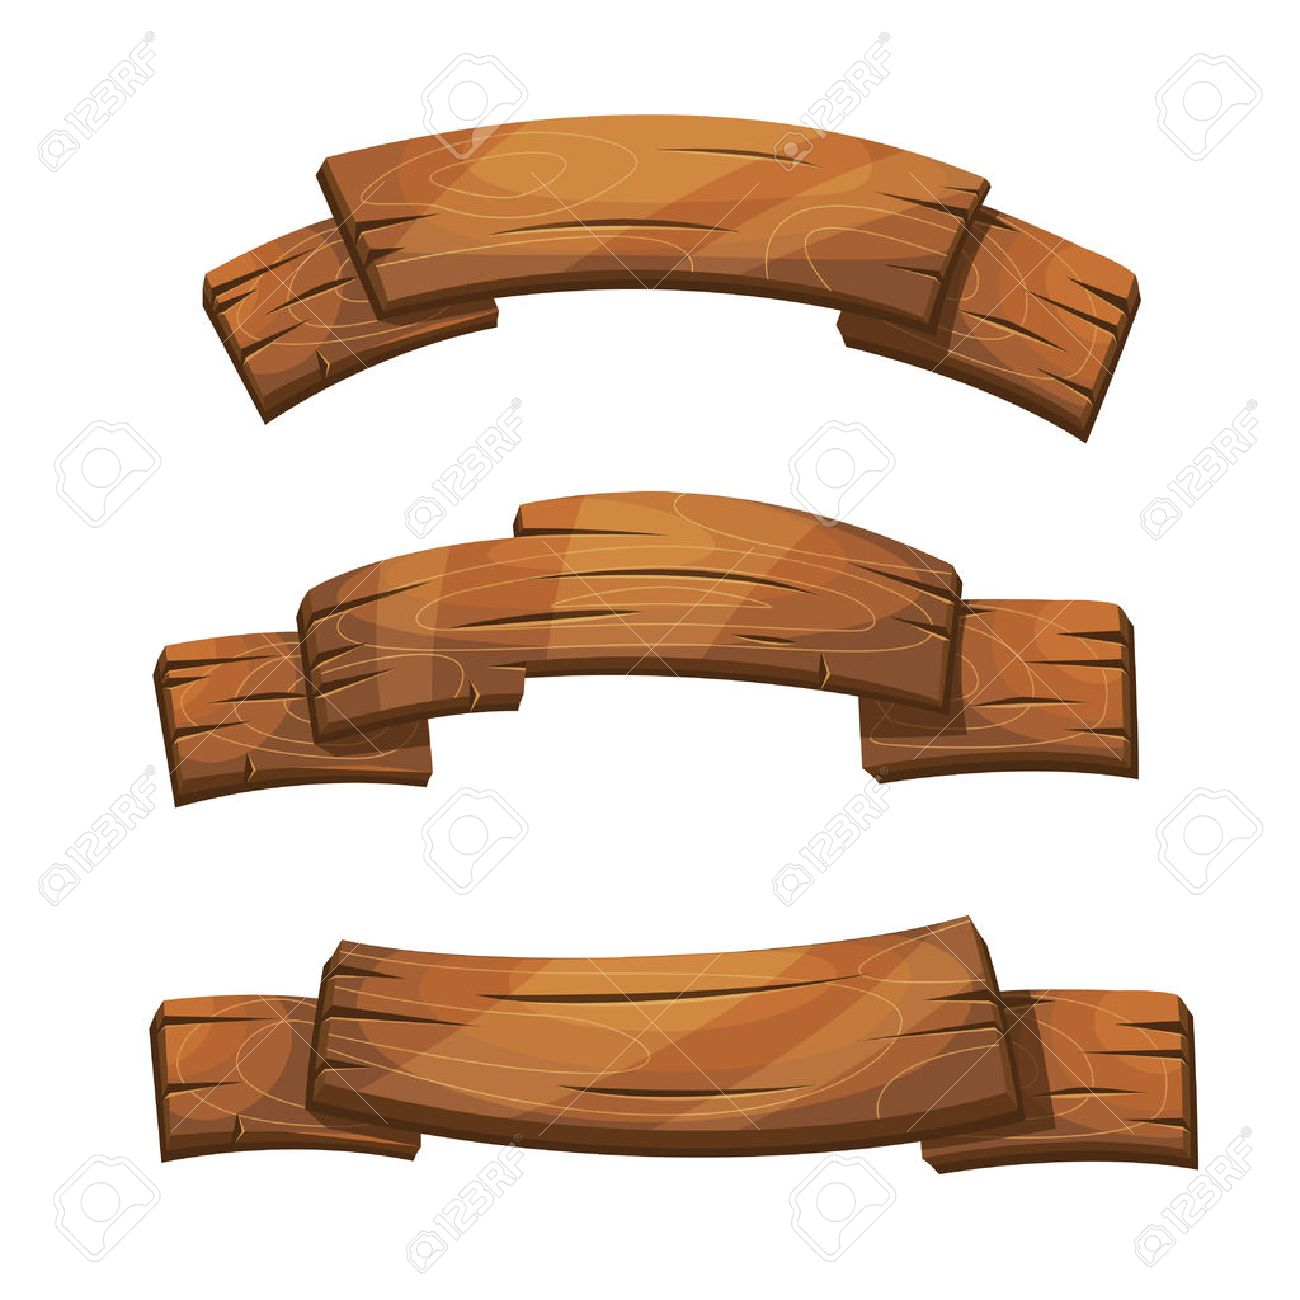 Comic wooden banners and signs. Wood plank board, cartoon wooden brown board illustration - 67400385